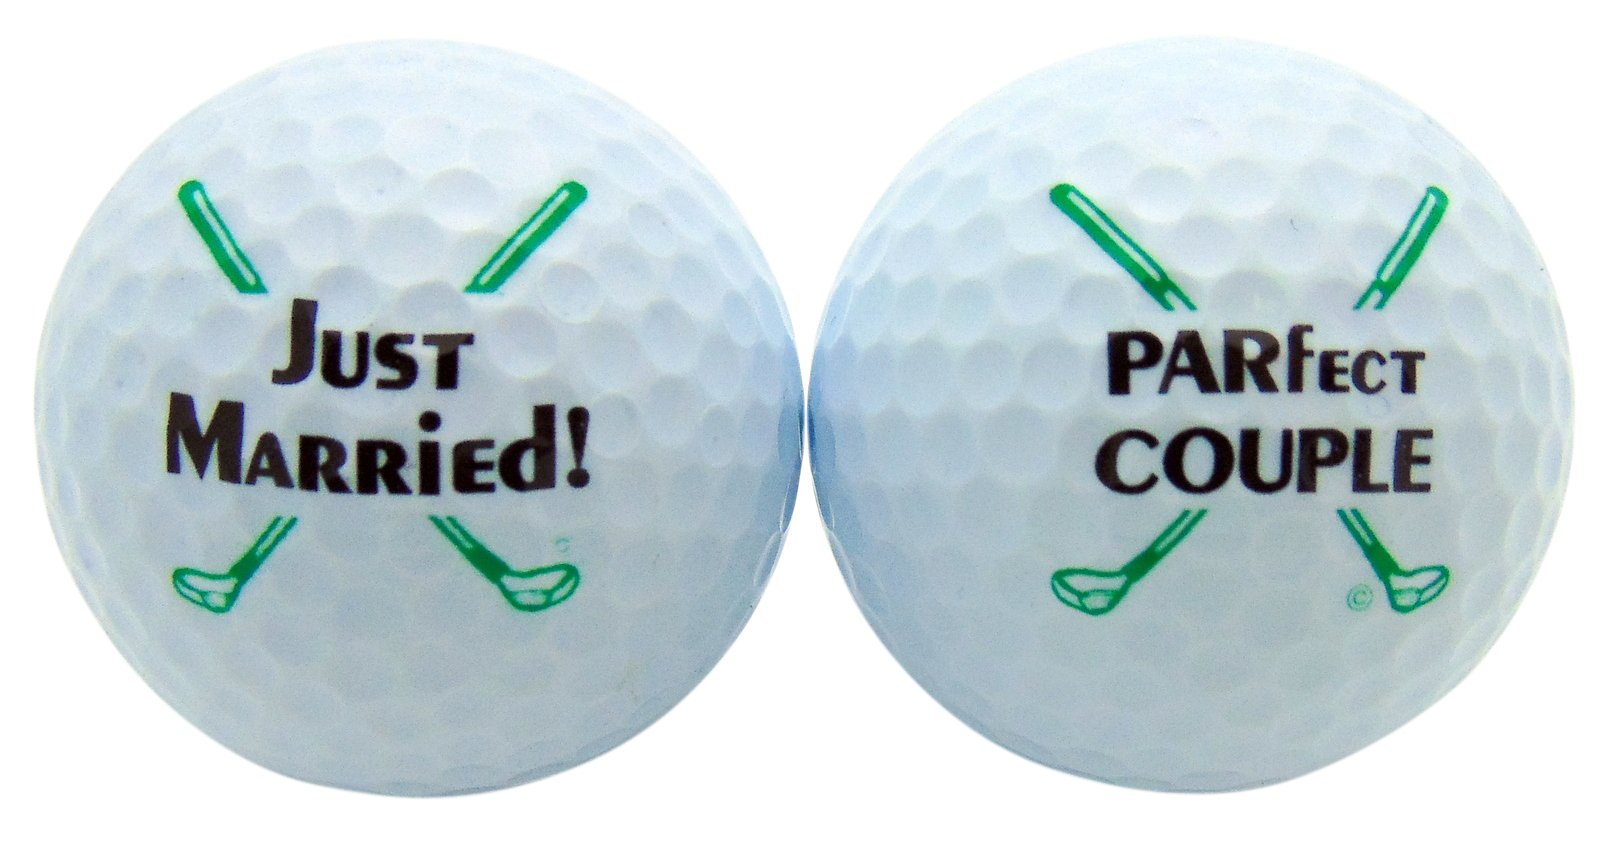 Just Married Newleywed Golf Balls Gift Boxed Two Ball Set by Westman Works (Image #1)